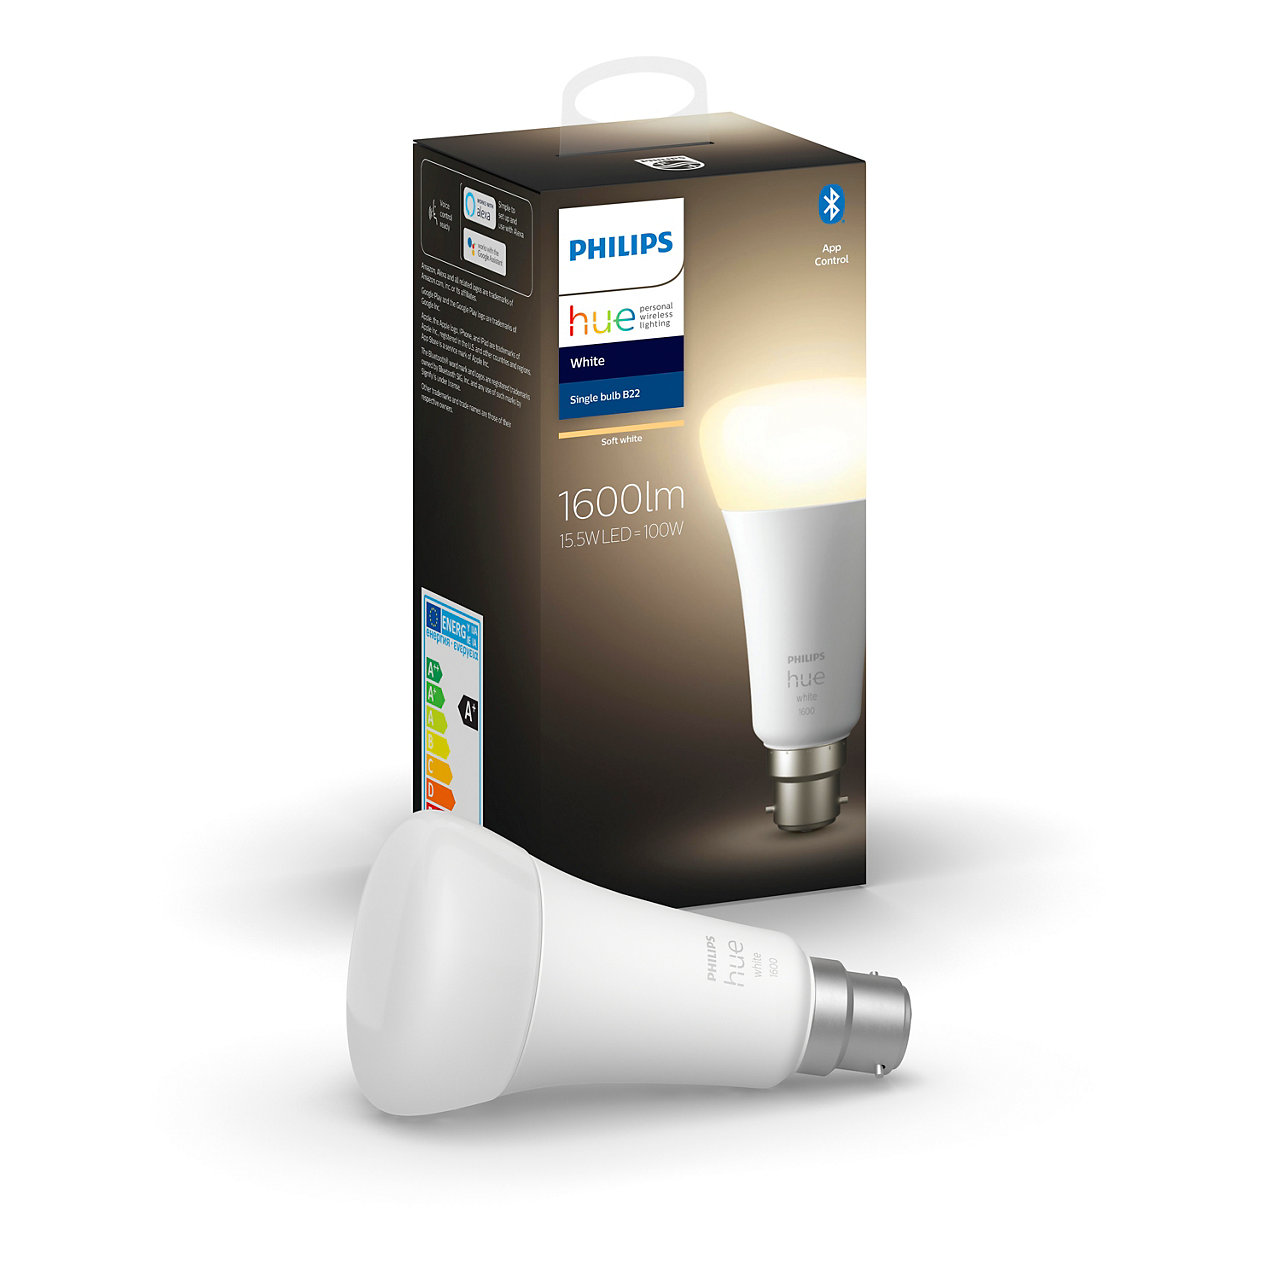 Hue White Bulb A67 B22 1600lm with Bluetooth